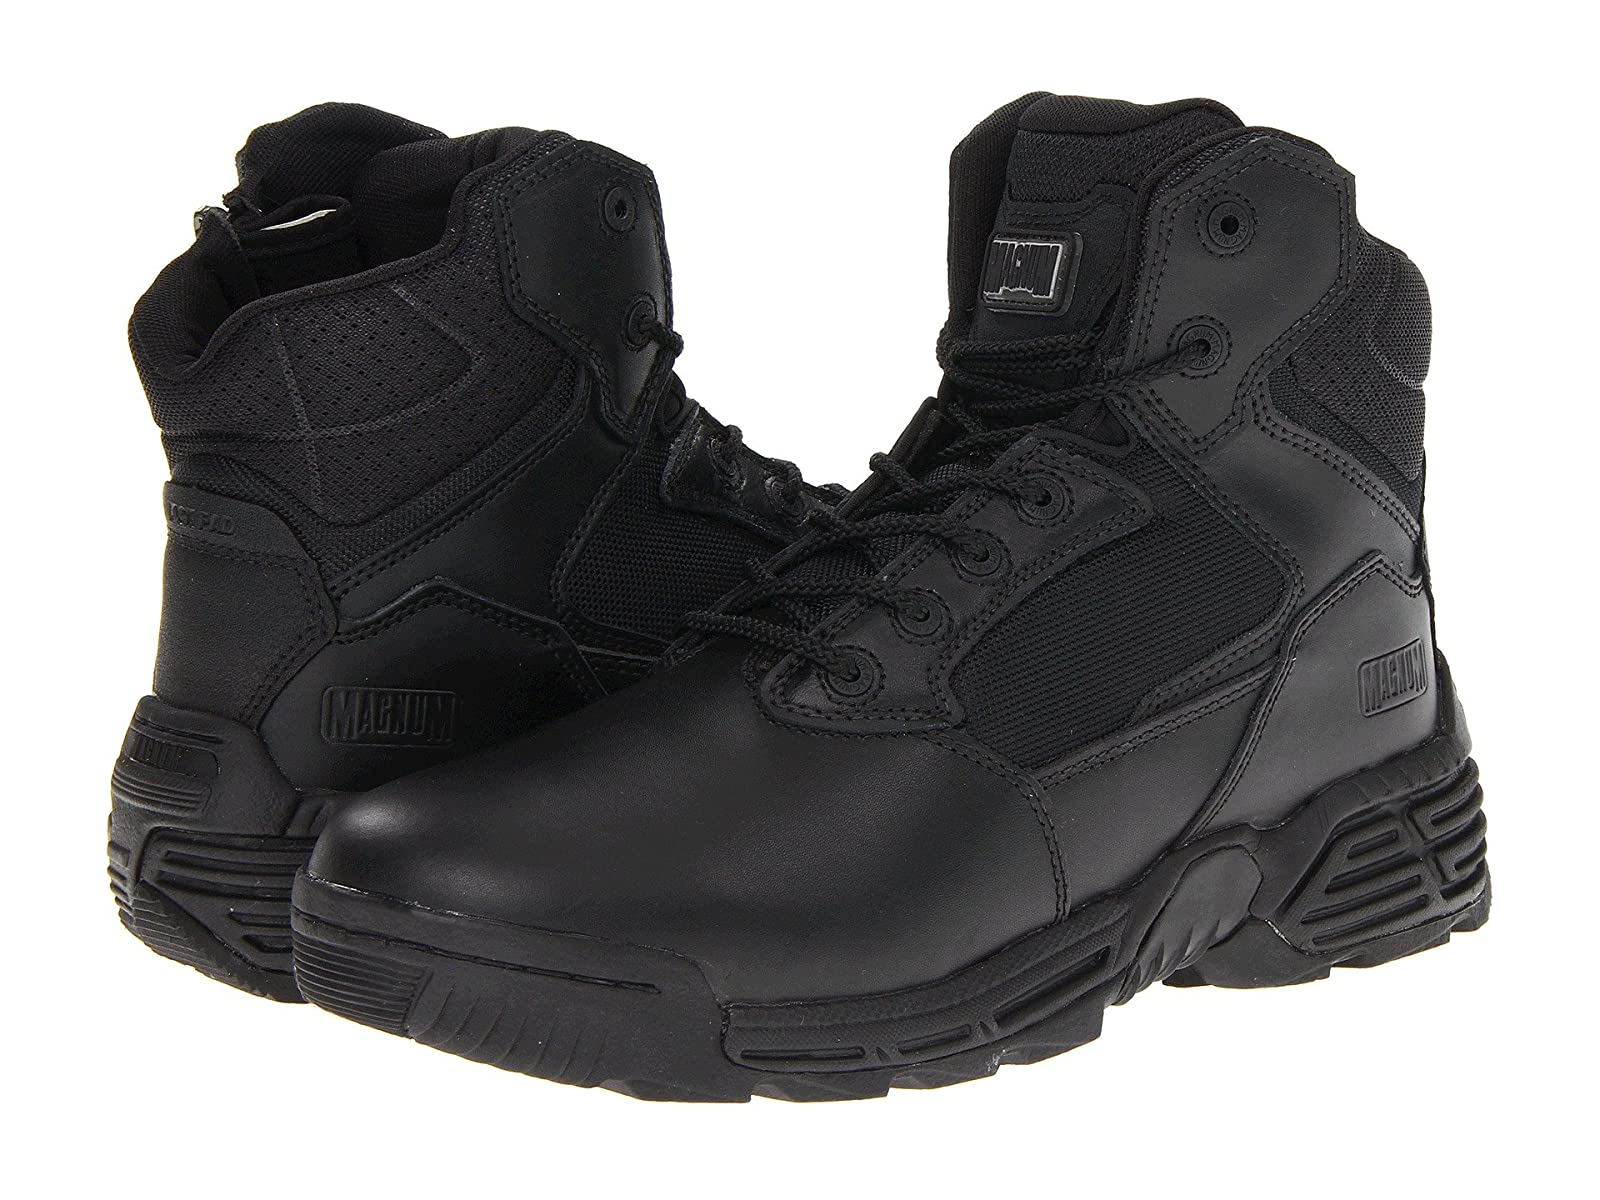 Magnum Stealth Force 6.0 Side ZipAffordable and distinctive shoes